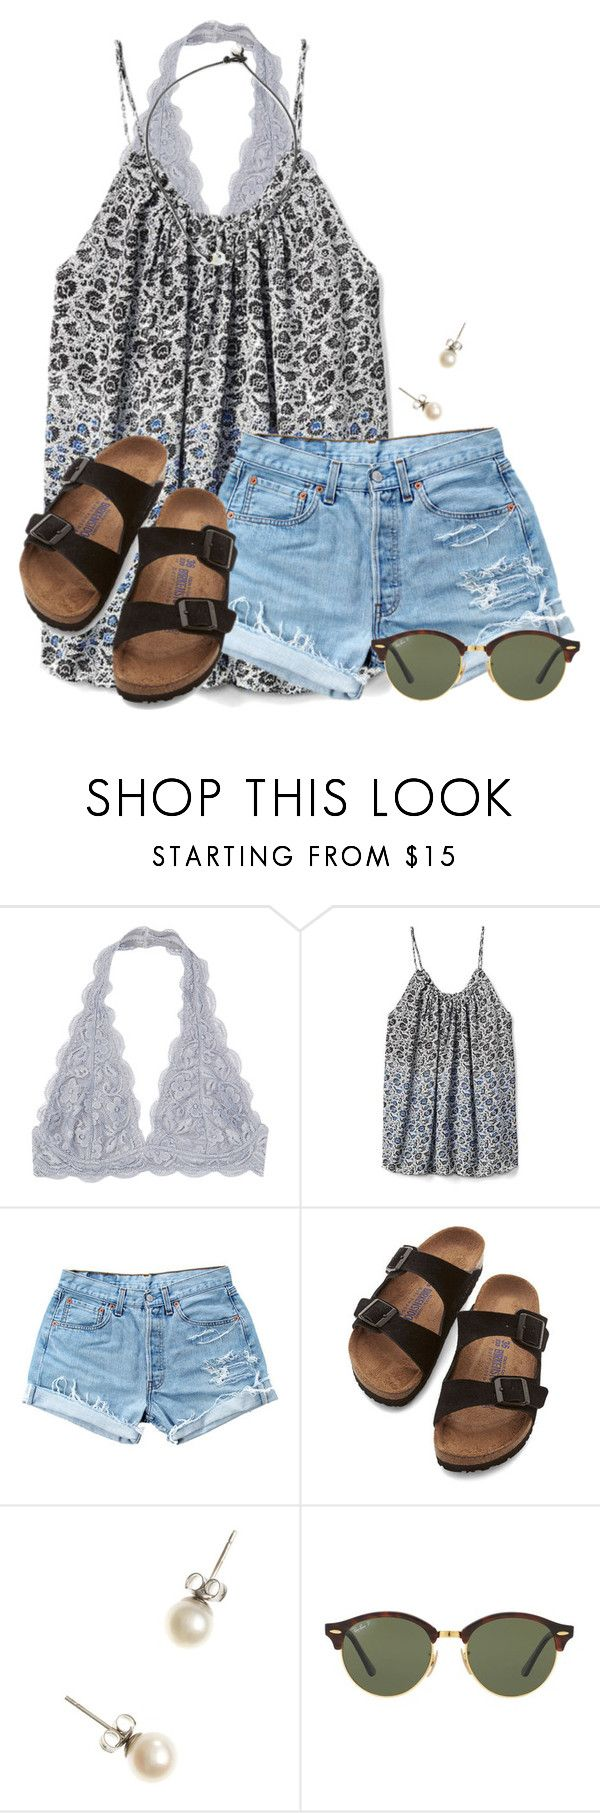 """Going dress shopping for my NHS ceremony"" by flroasburn ❤ liked on Polyvore featuring Gap, Levi's, Birkenstock, J.Crew and Ray-Ban"